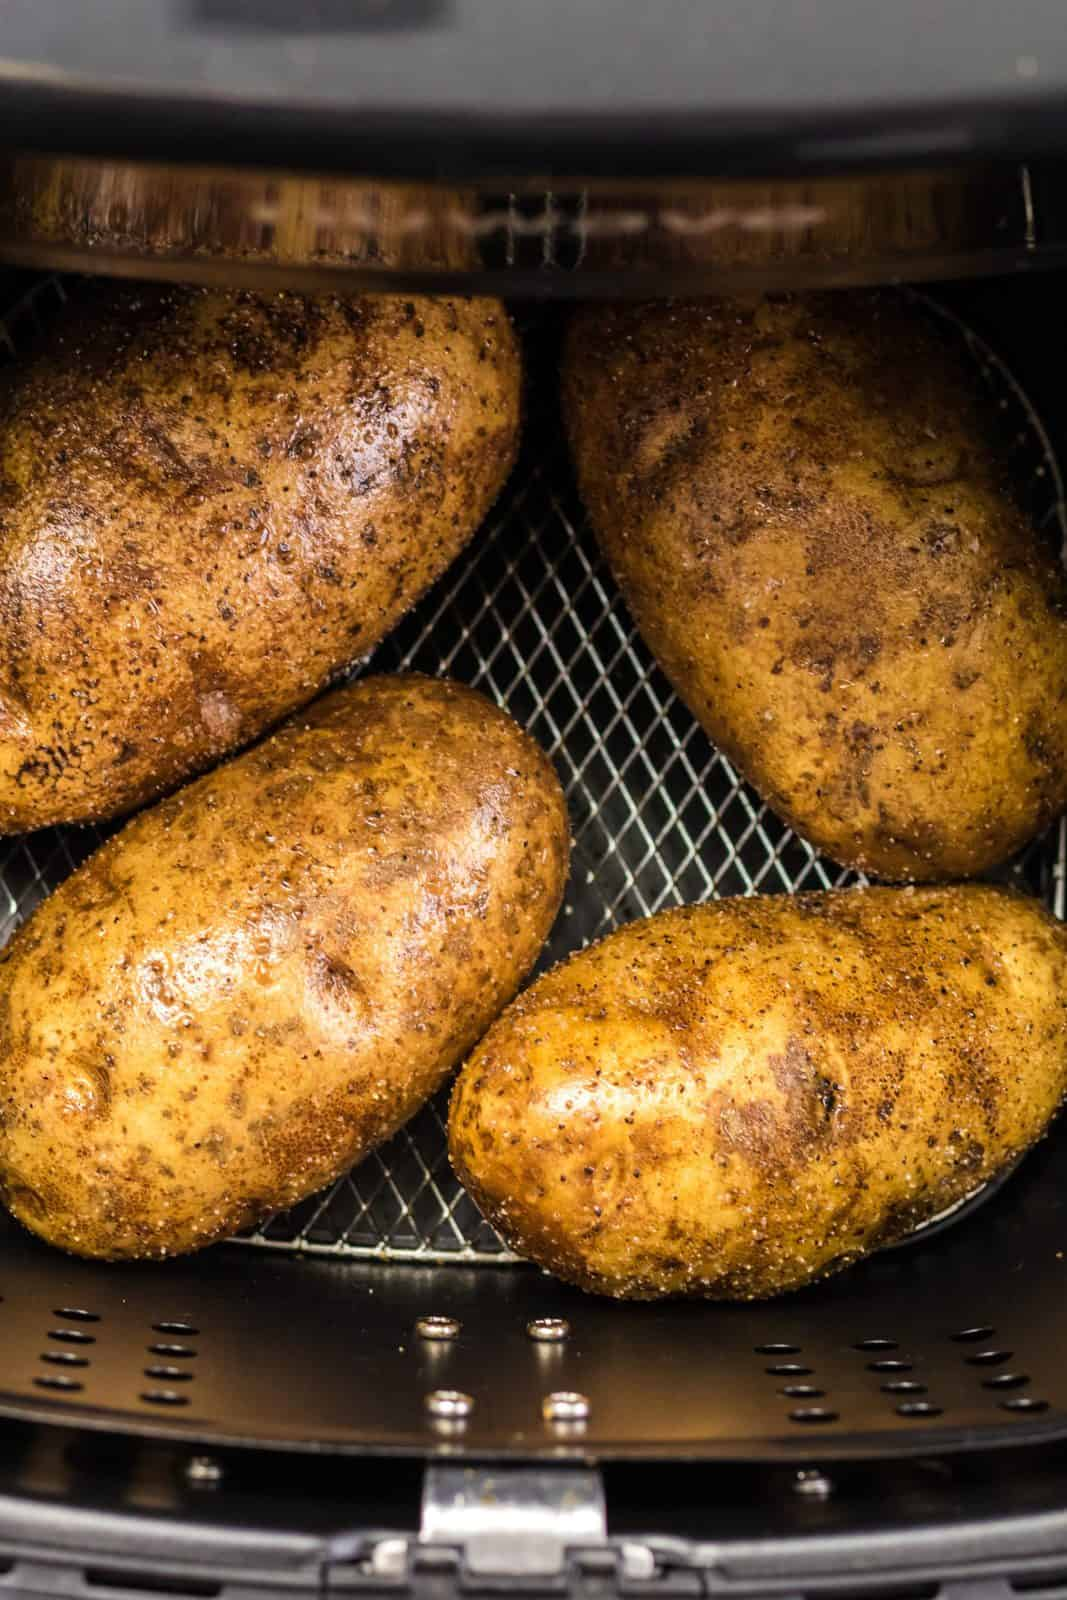 Baked Potatoes placed in air fryer.